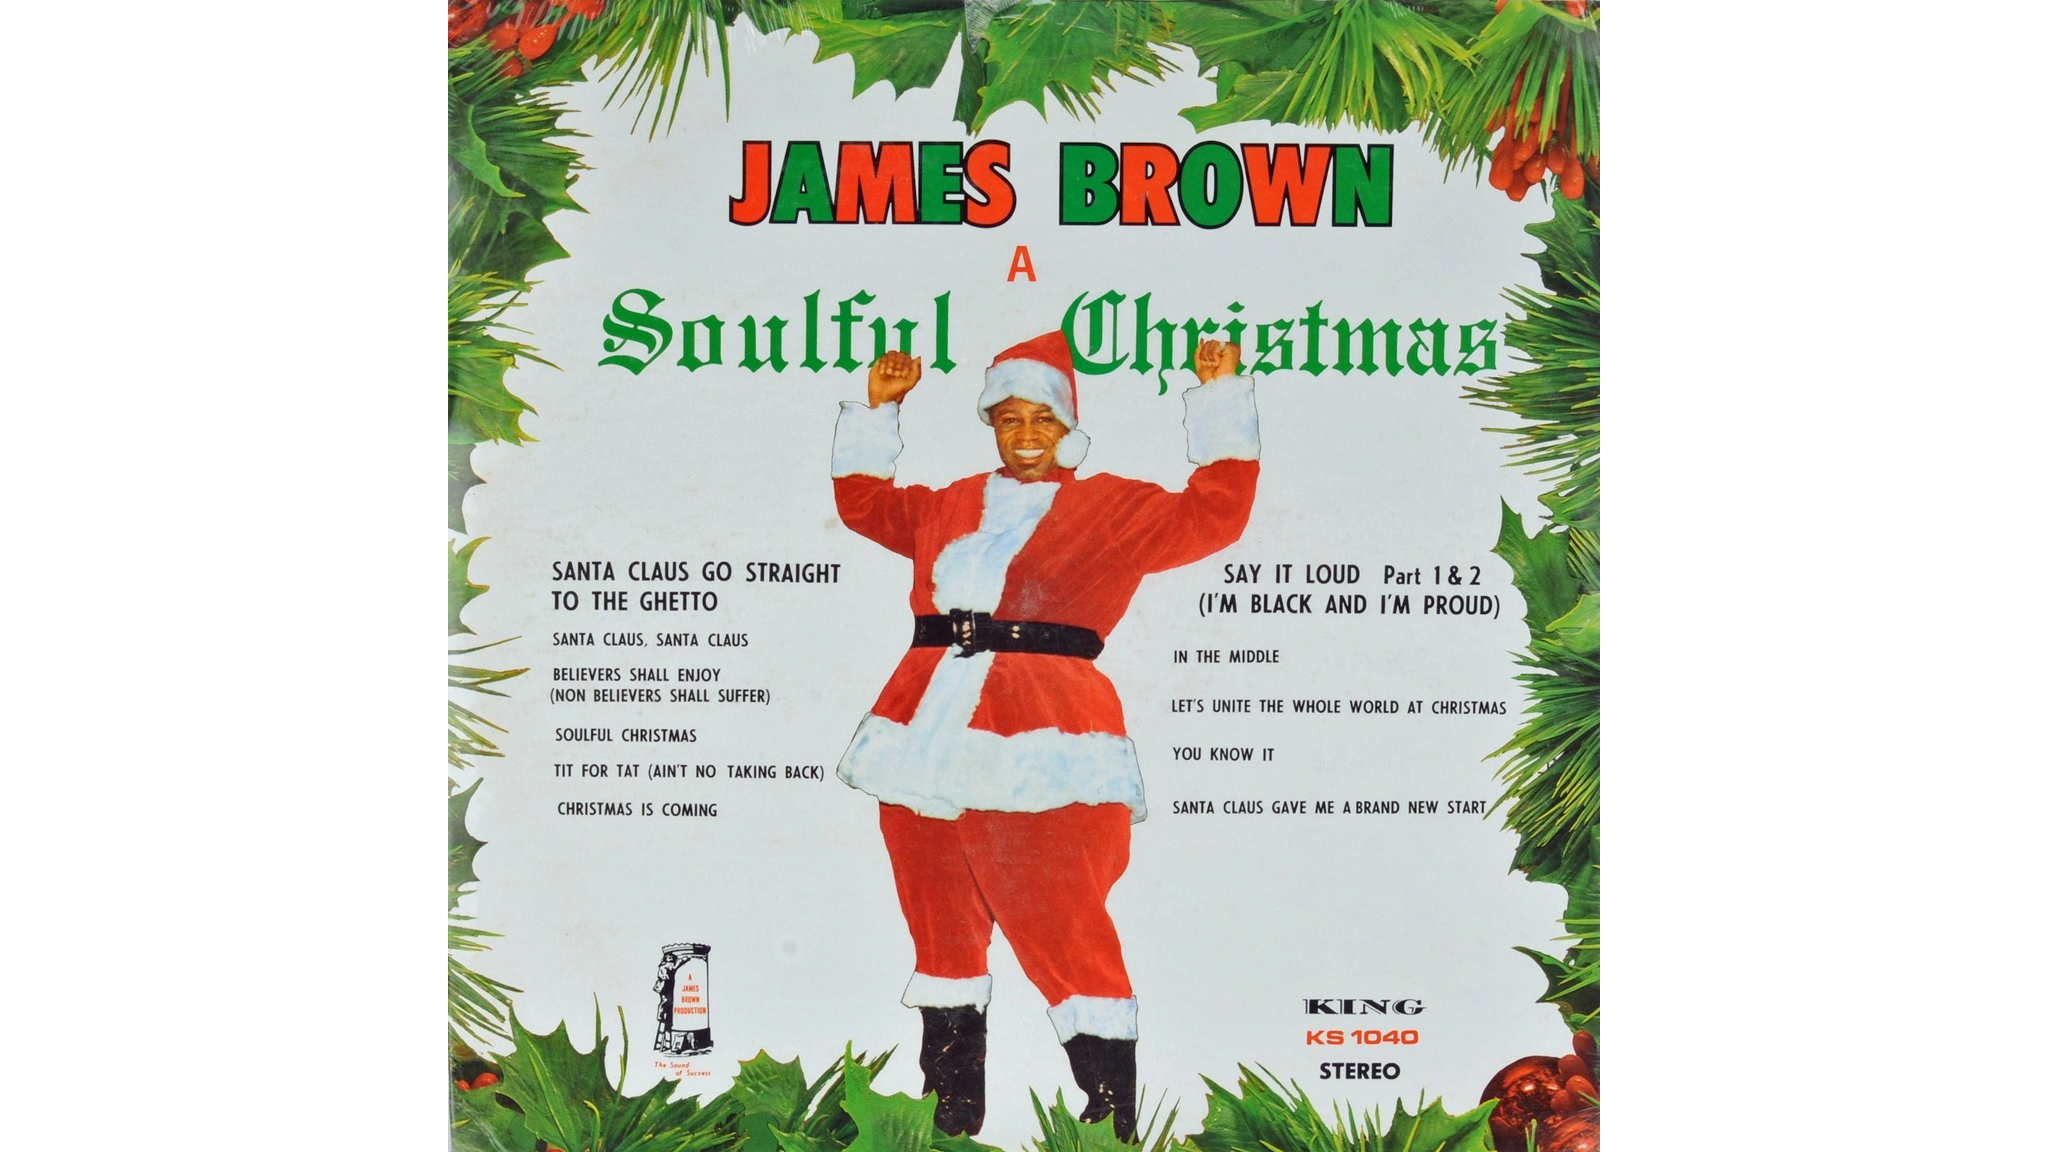 'Santa Claus Go Straight to the Ghetto' – James Brown